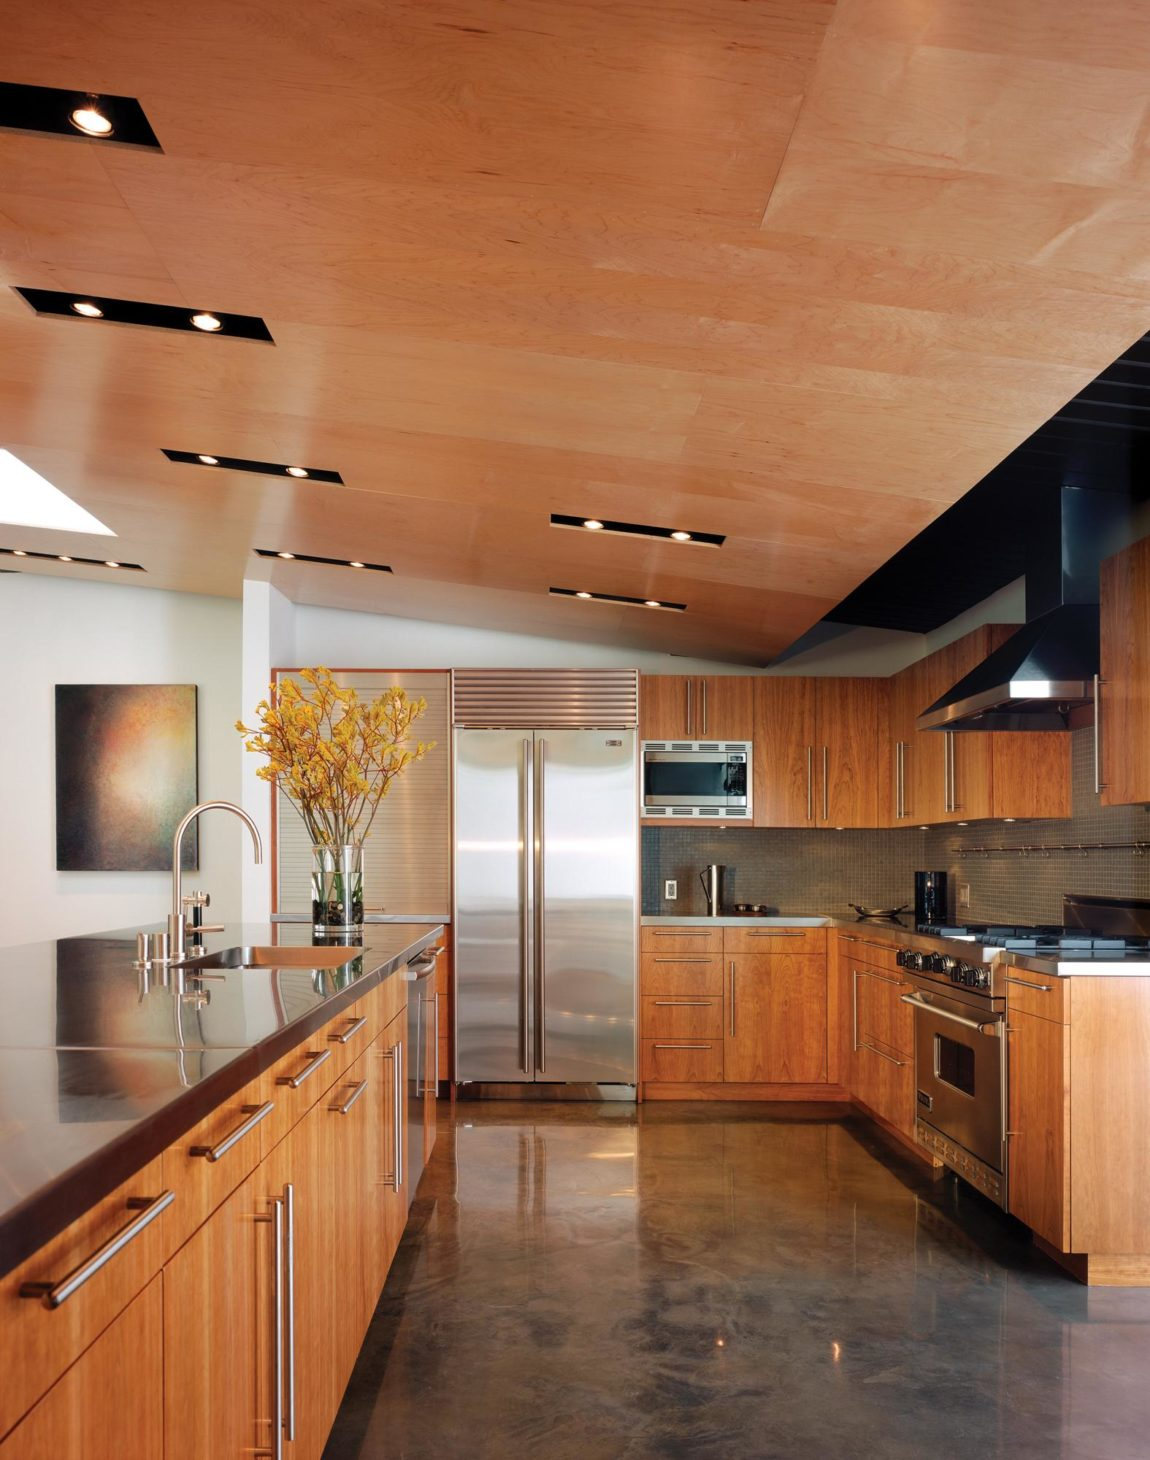 Benedict Canyon Residence by Griffin Enright Architects (9)